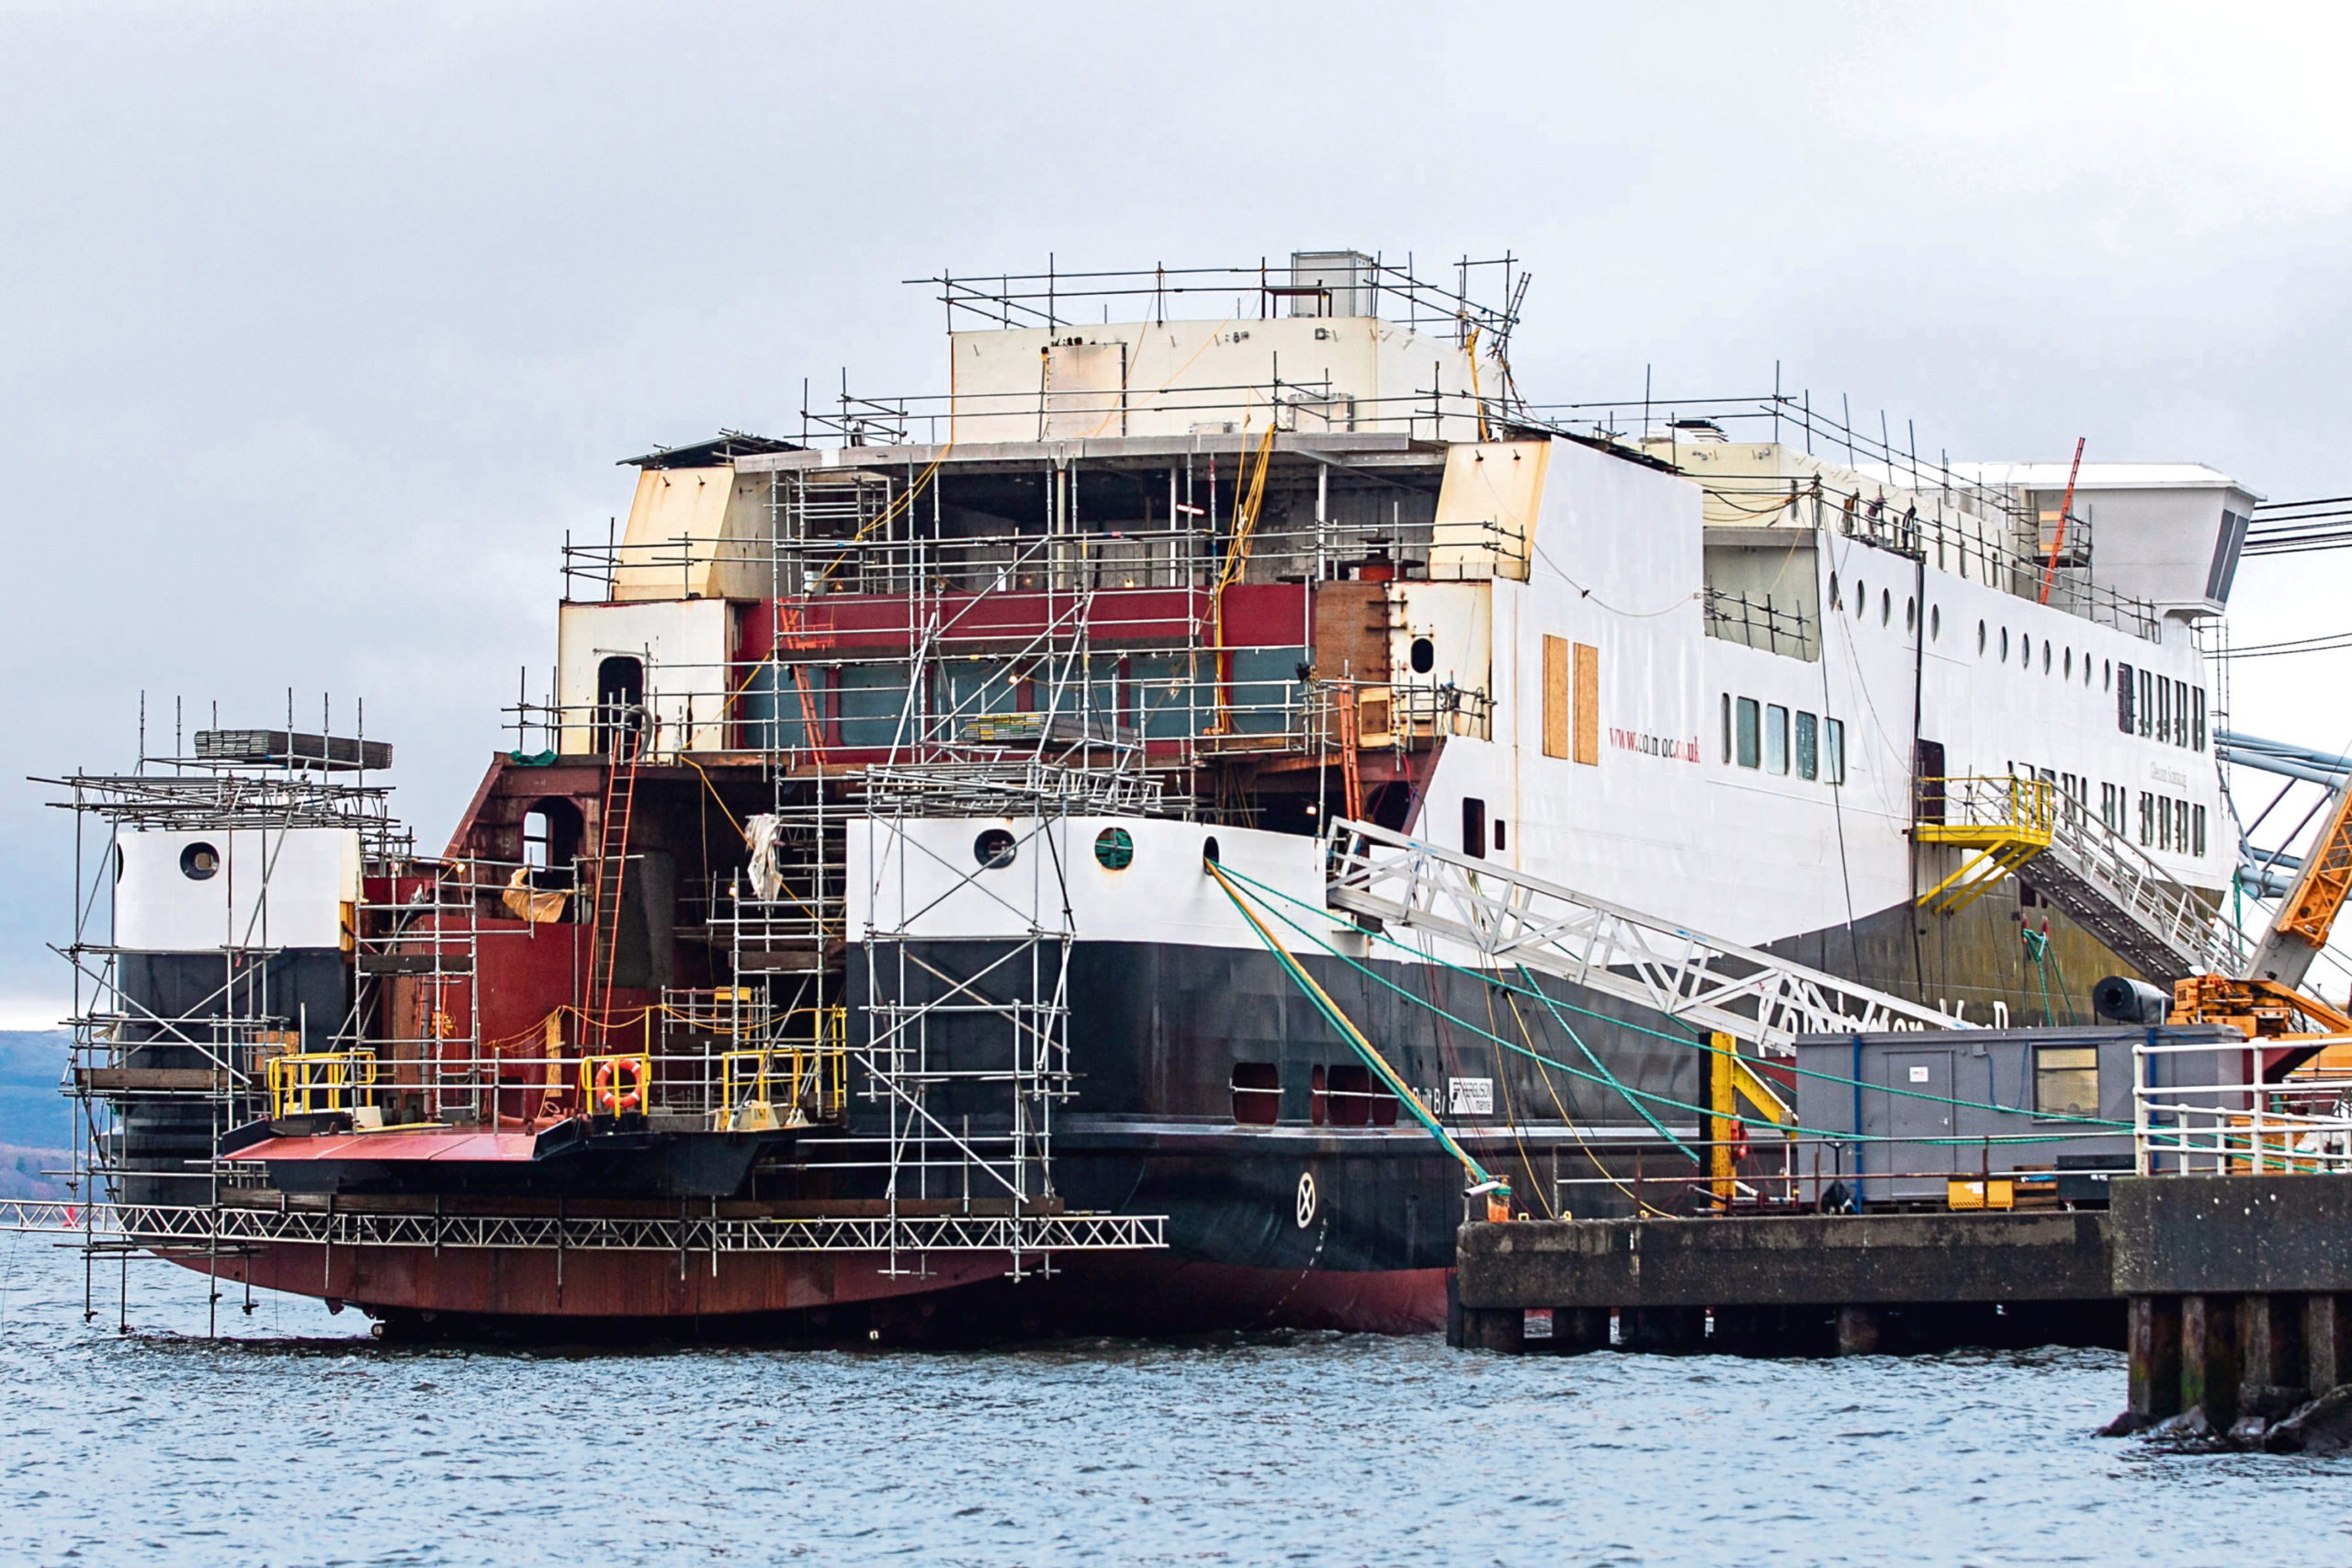 One of the half-built ferries in Port Glasgow